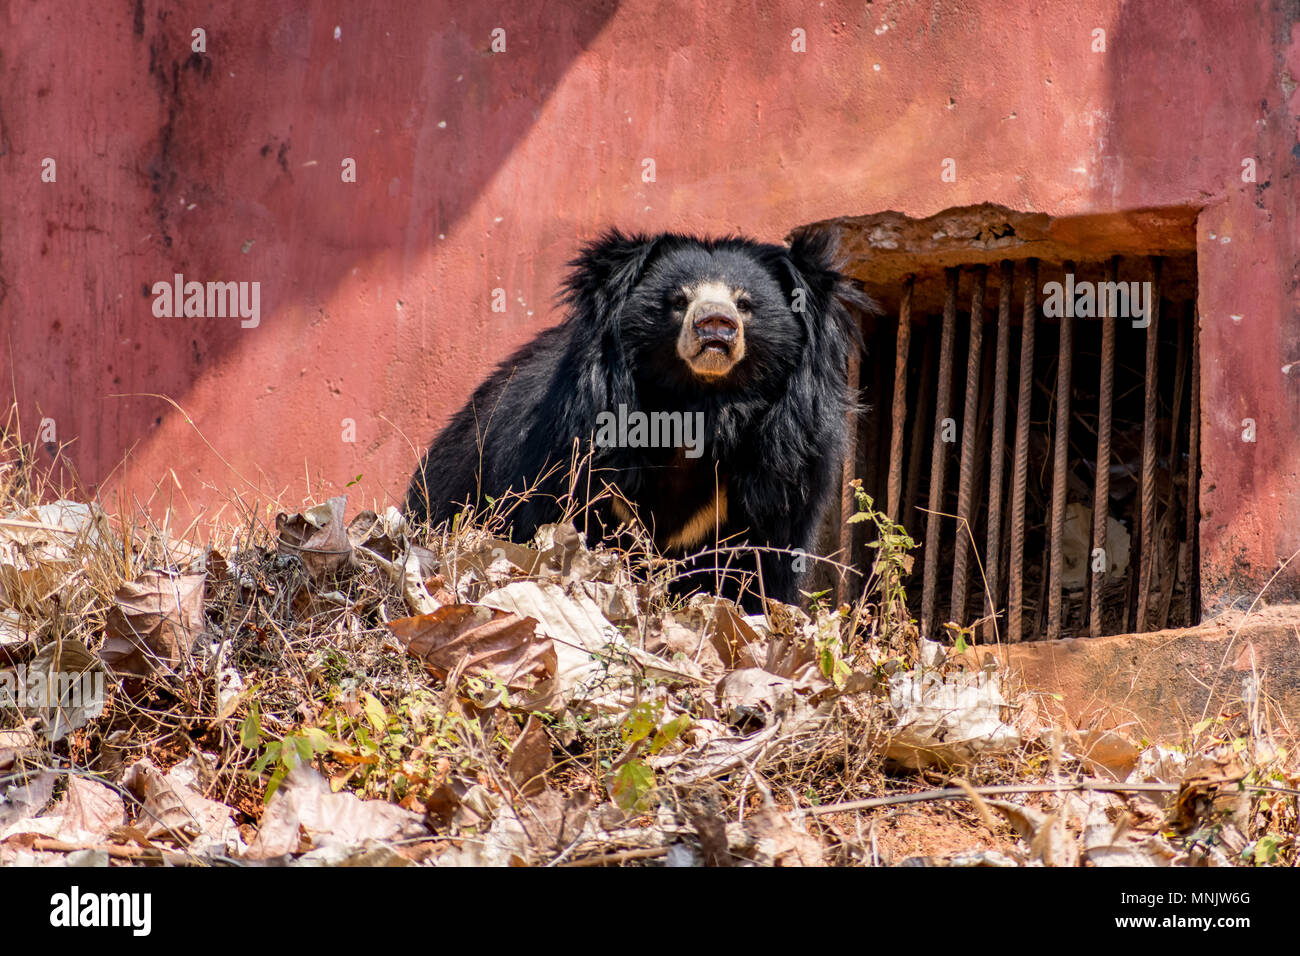 Close view of black bear at indian zoo shouting very loudly. - Stock Image